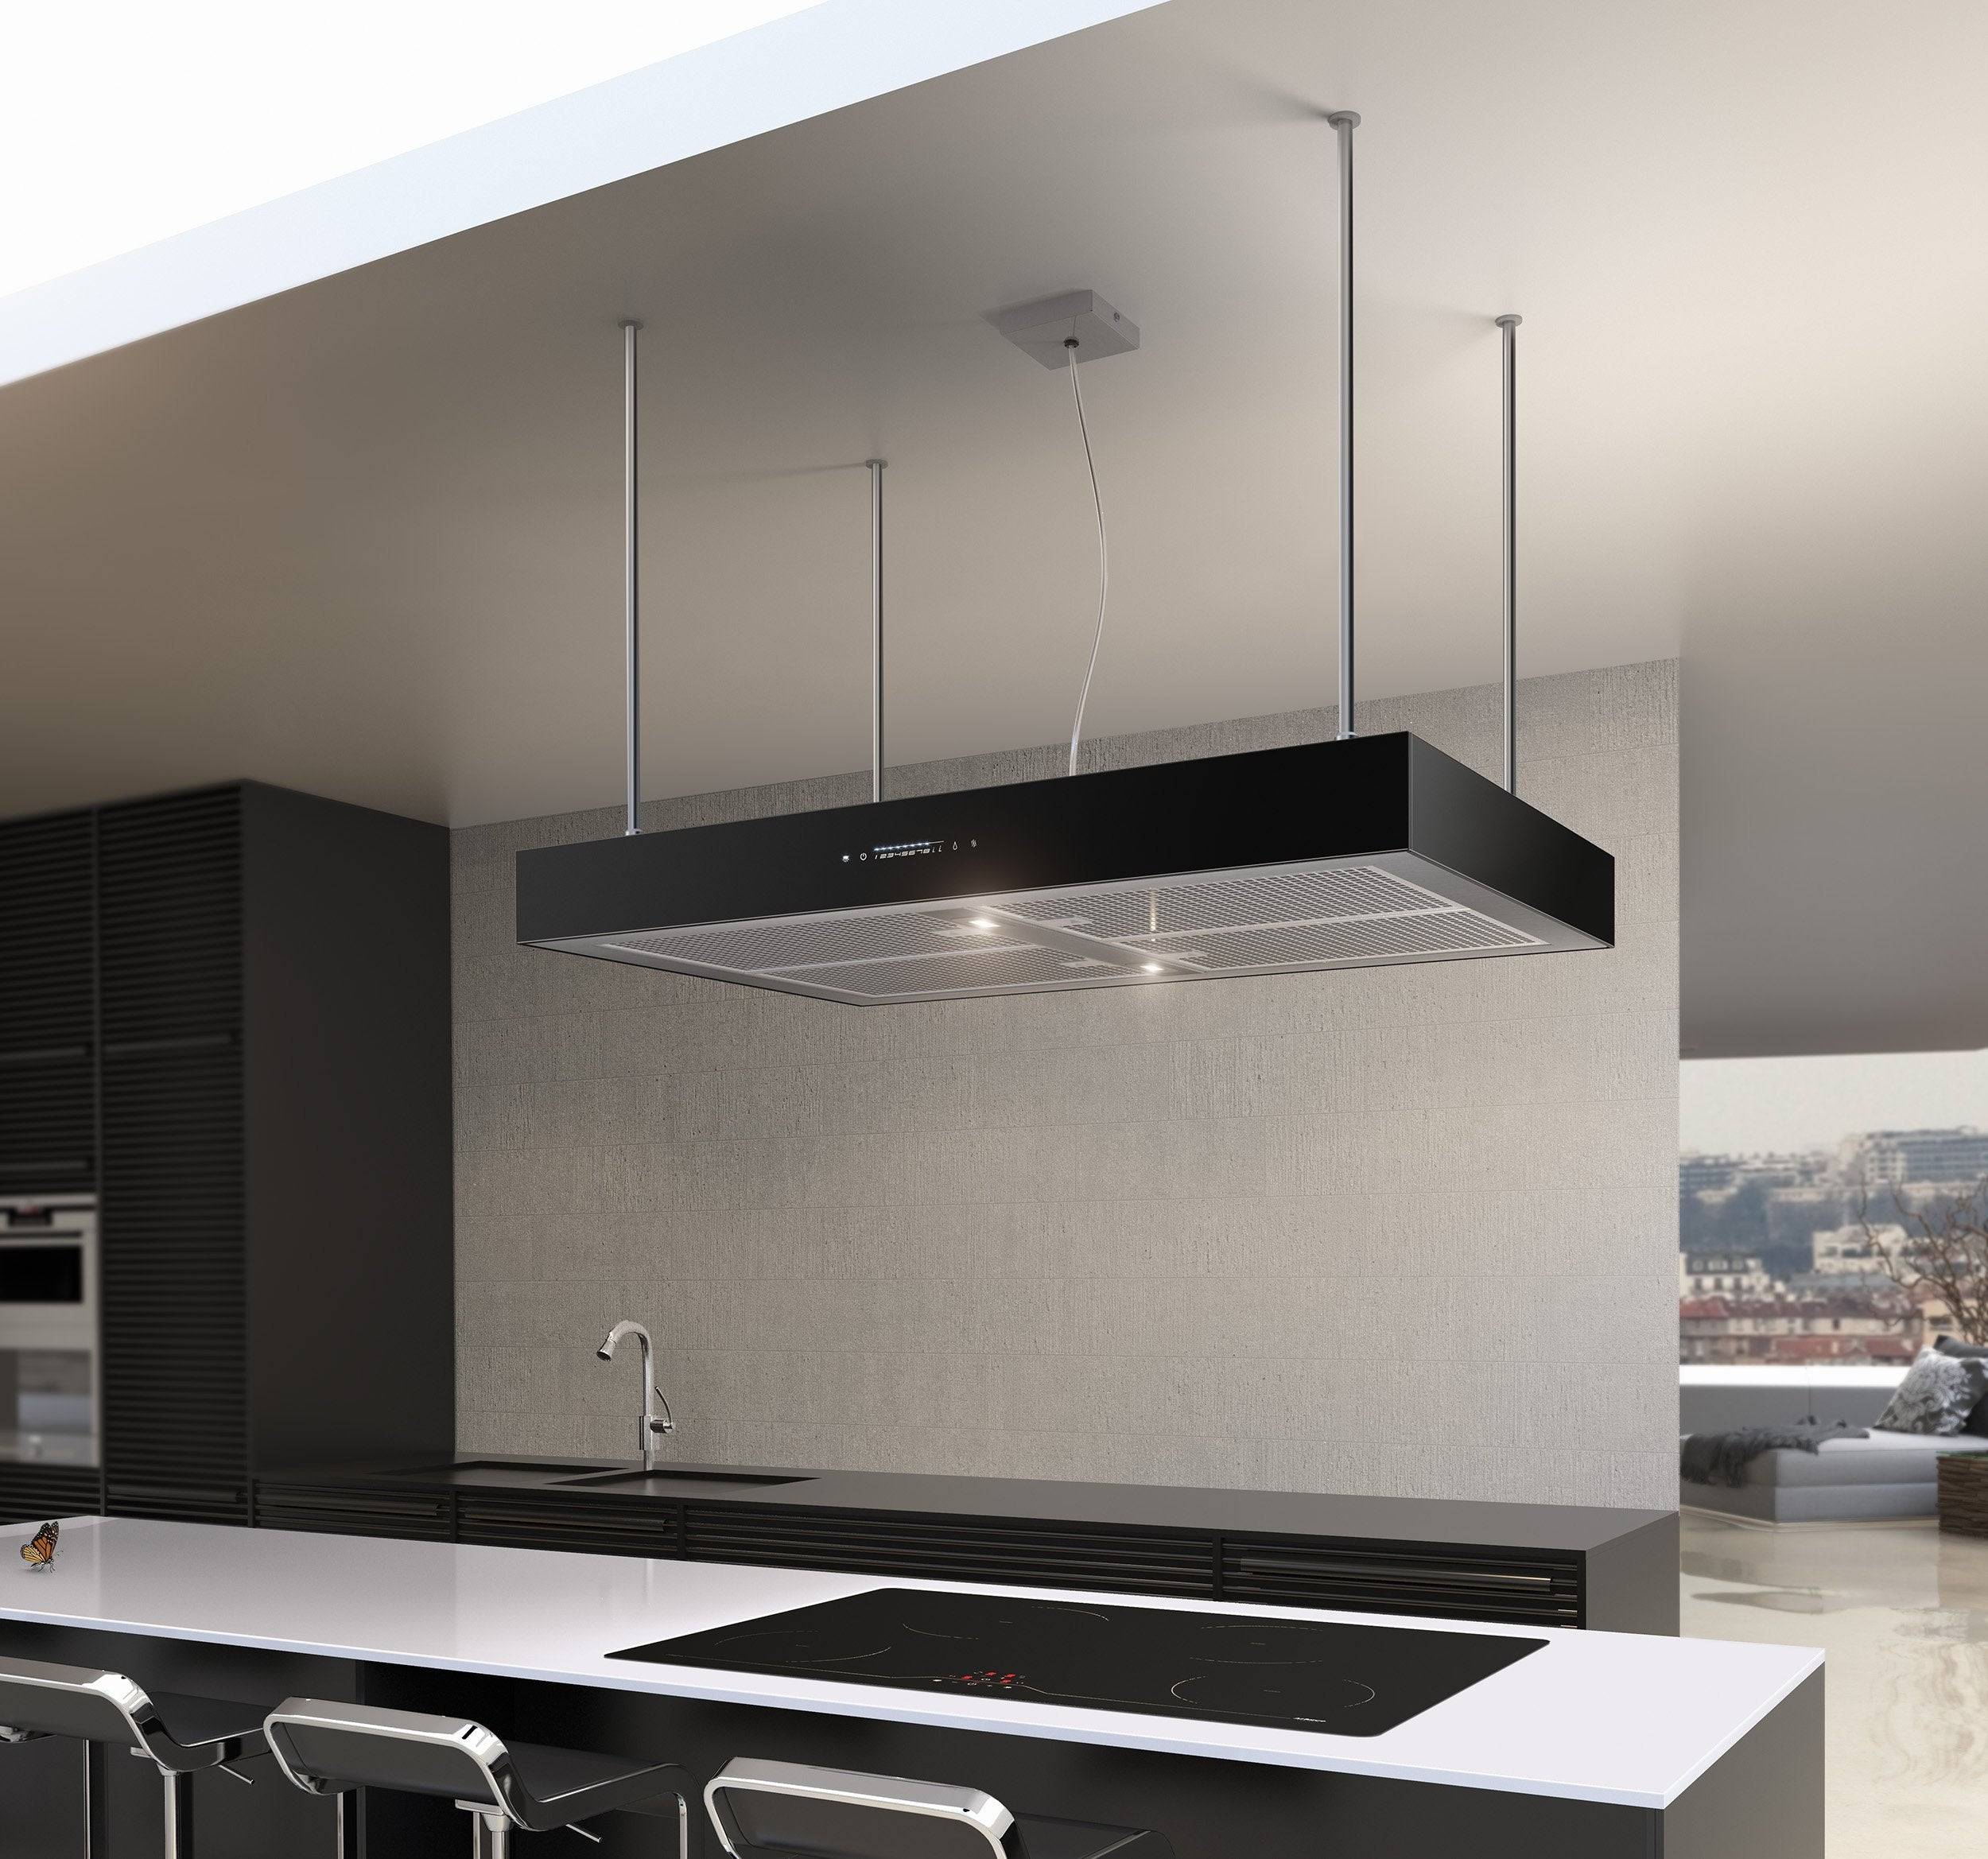 Airforce F161 4 x Axial Motor 90cm Premium Island Cooker Hood - Black - Lifestyle view